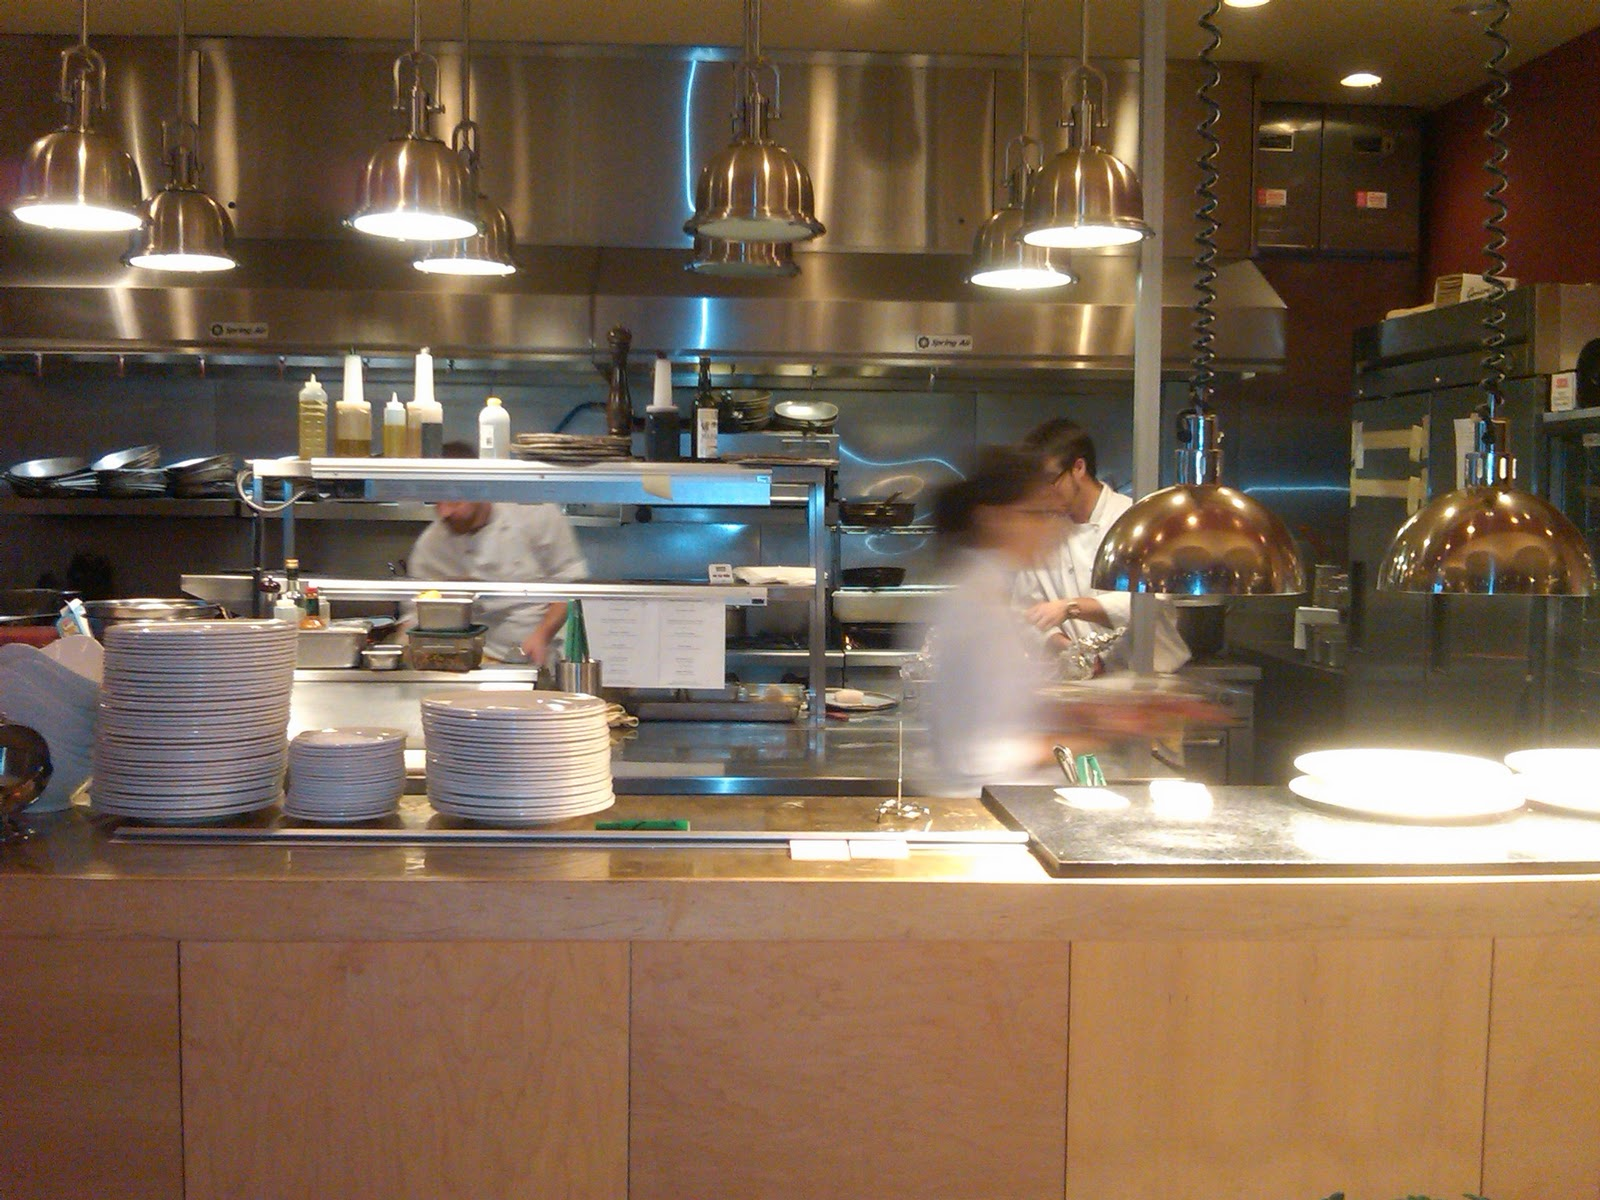 Perfect Restaurant Kitchen View Counter In Stainless Steel On